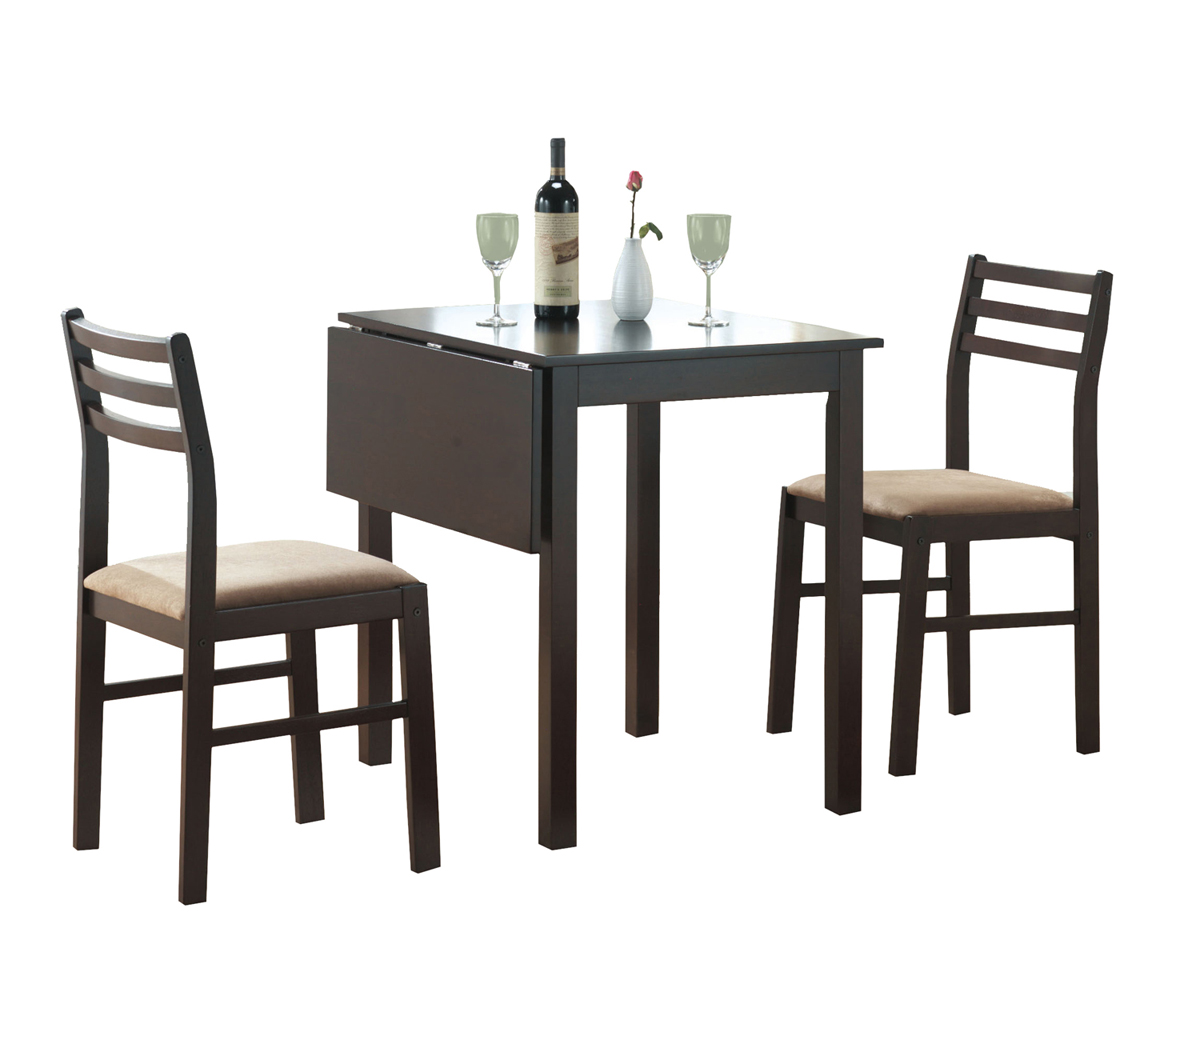 Dining Set - 3 Pieces Set / Cappuccino Solid-Top Drop Leaf